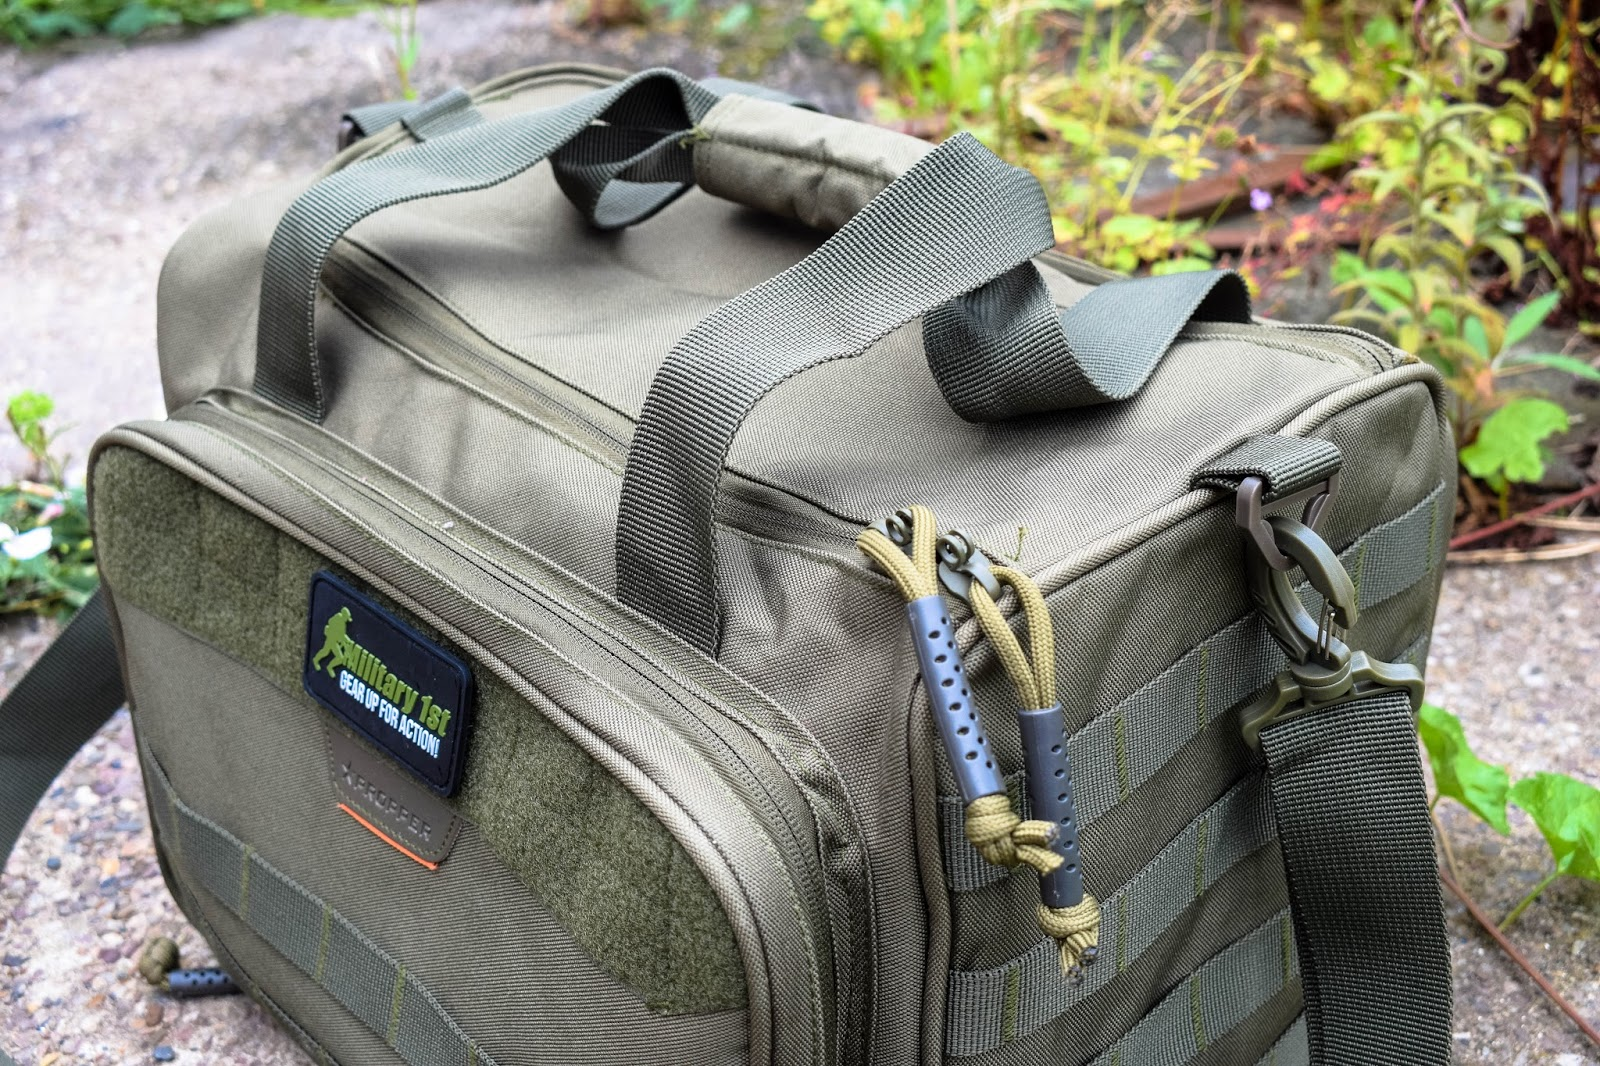 Propper Range Bag From Military 1st Review Femme Fatale